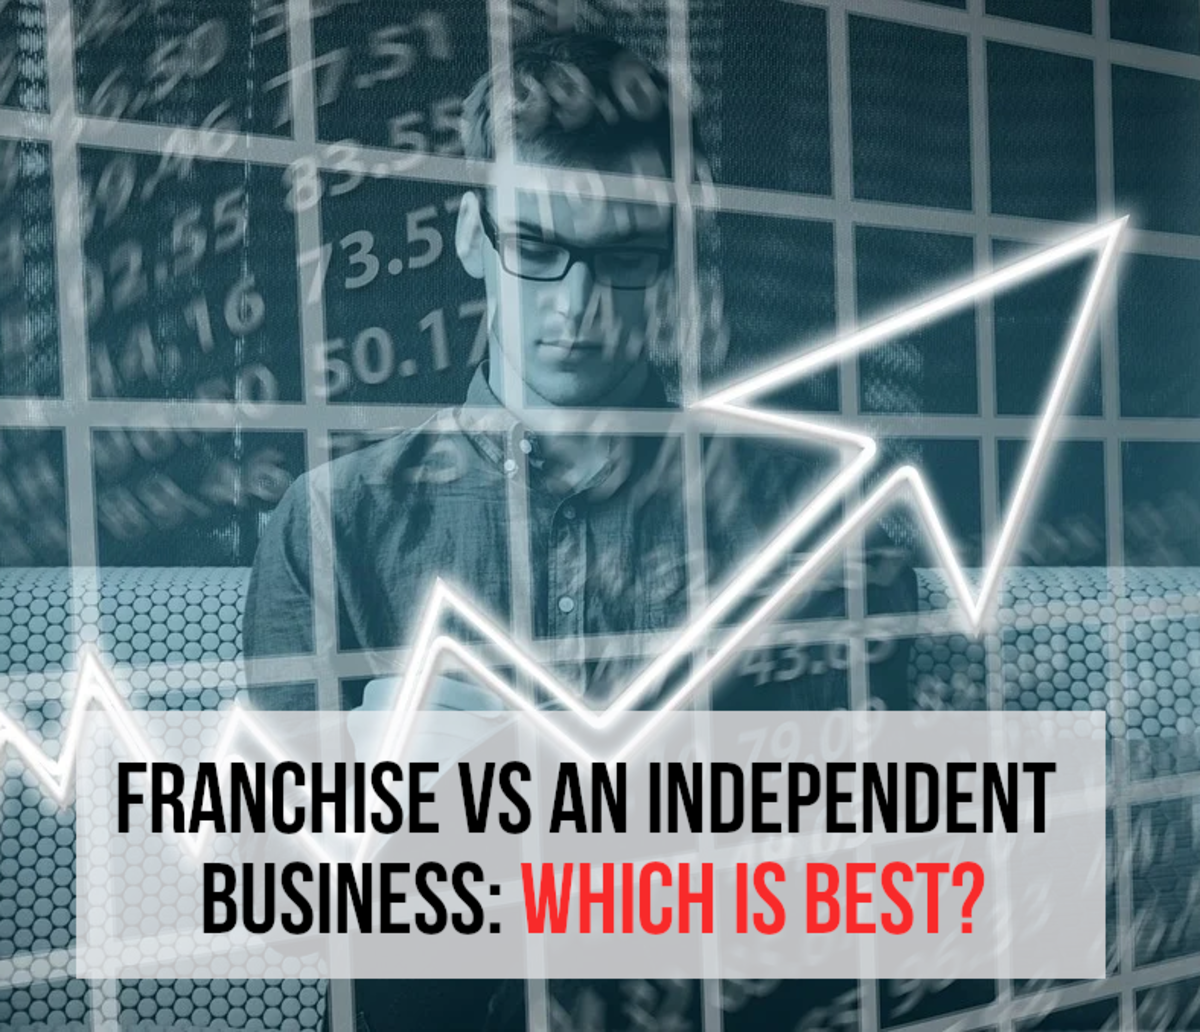 Assessing the pros and cons of operating a franchise, compared to operating an independent business, can be a headache, due to many factors.  Below, I list the relative advantages and disadvantages of both approaches form a business perspective.